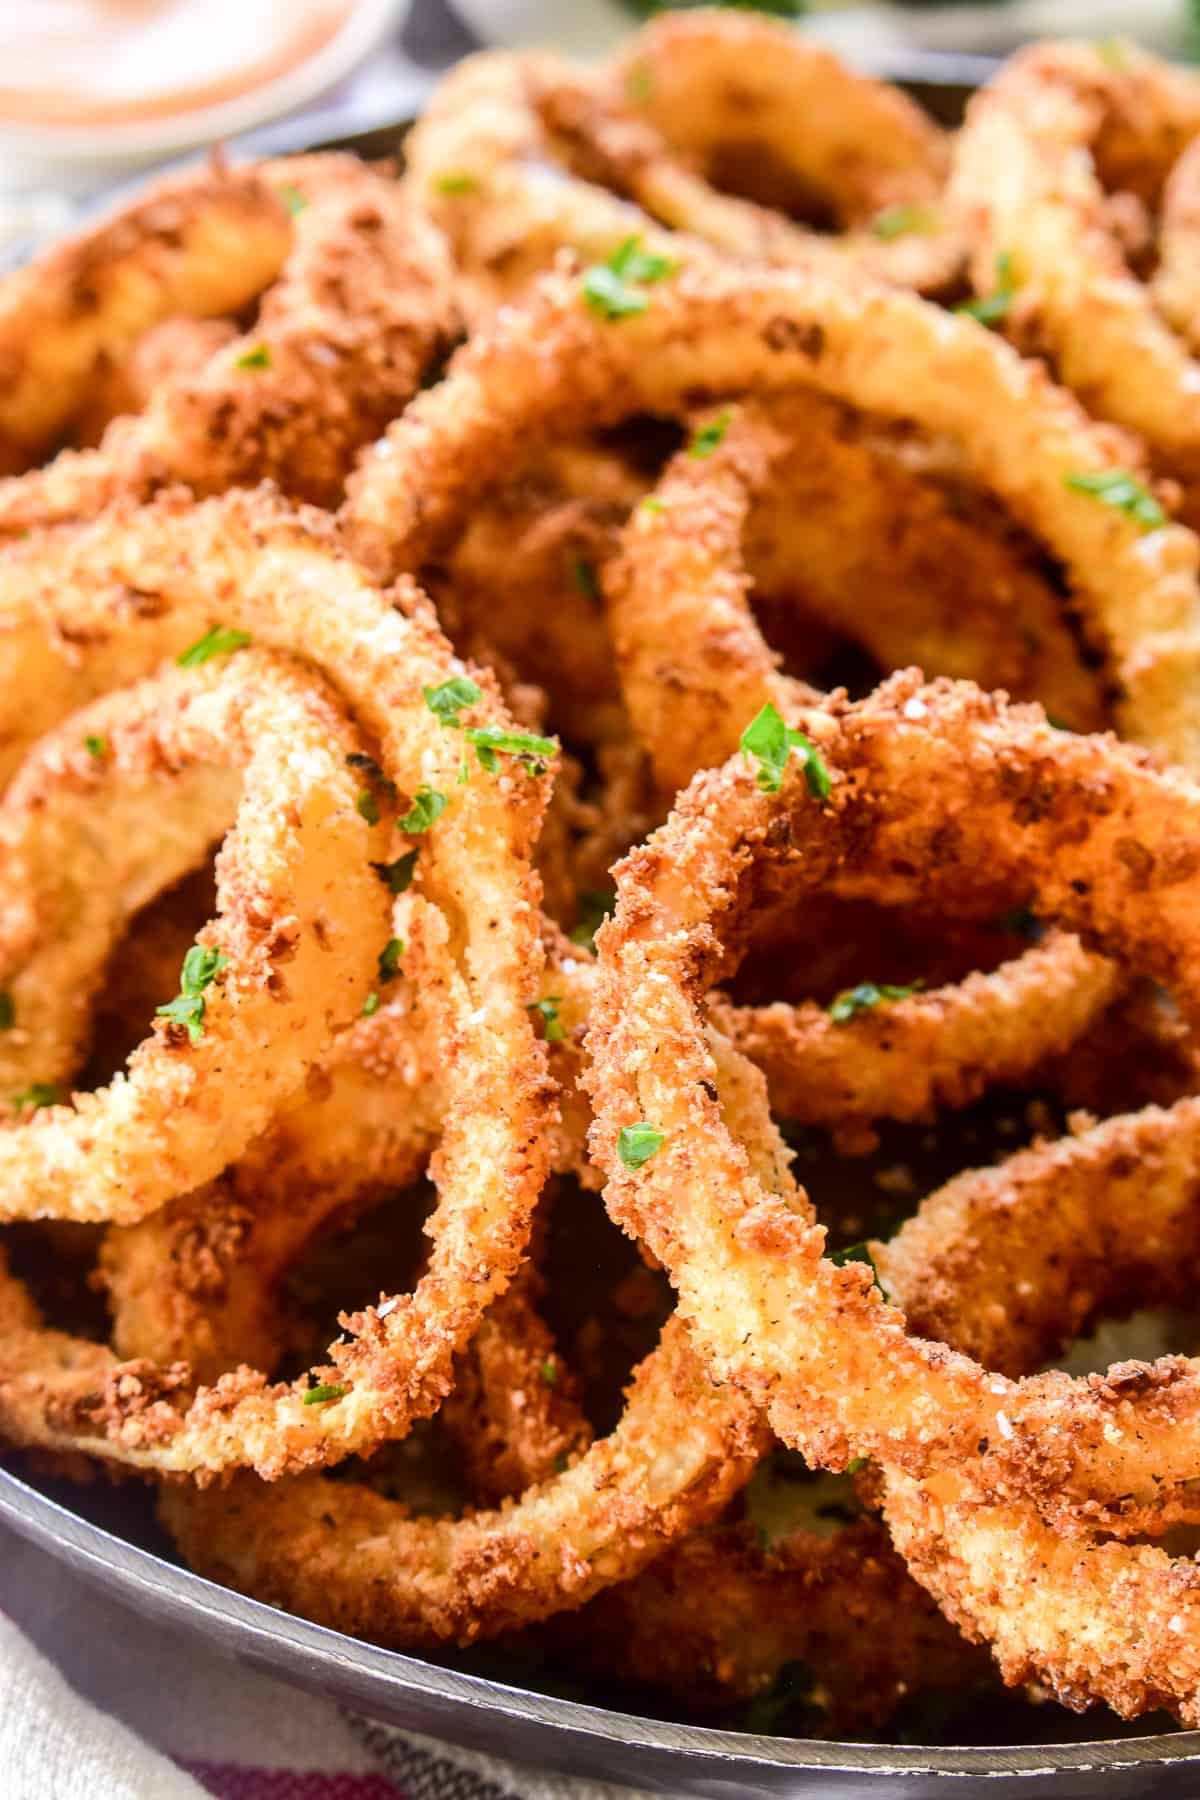 Extreme close up of Onion Rings on a plate